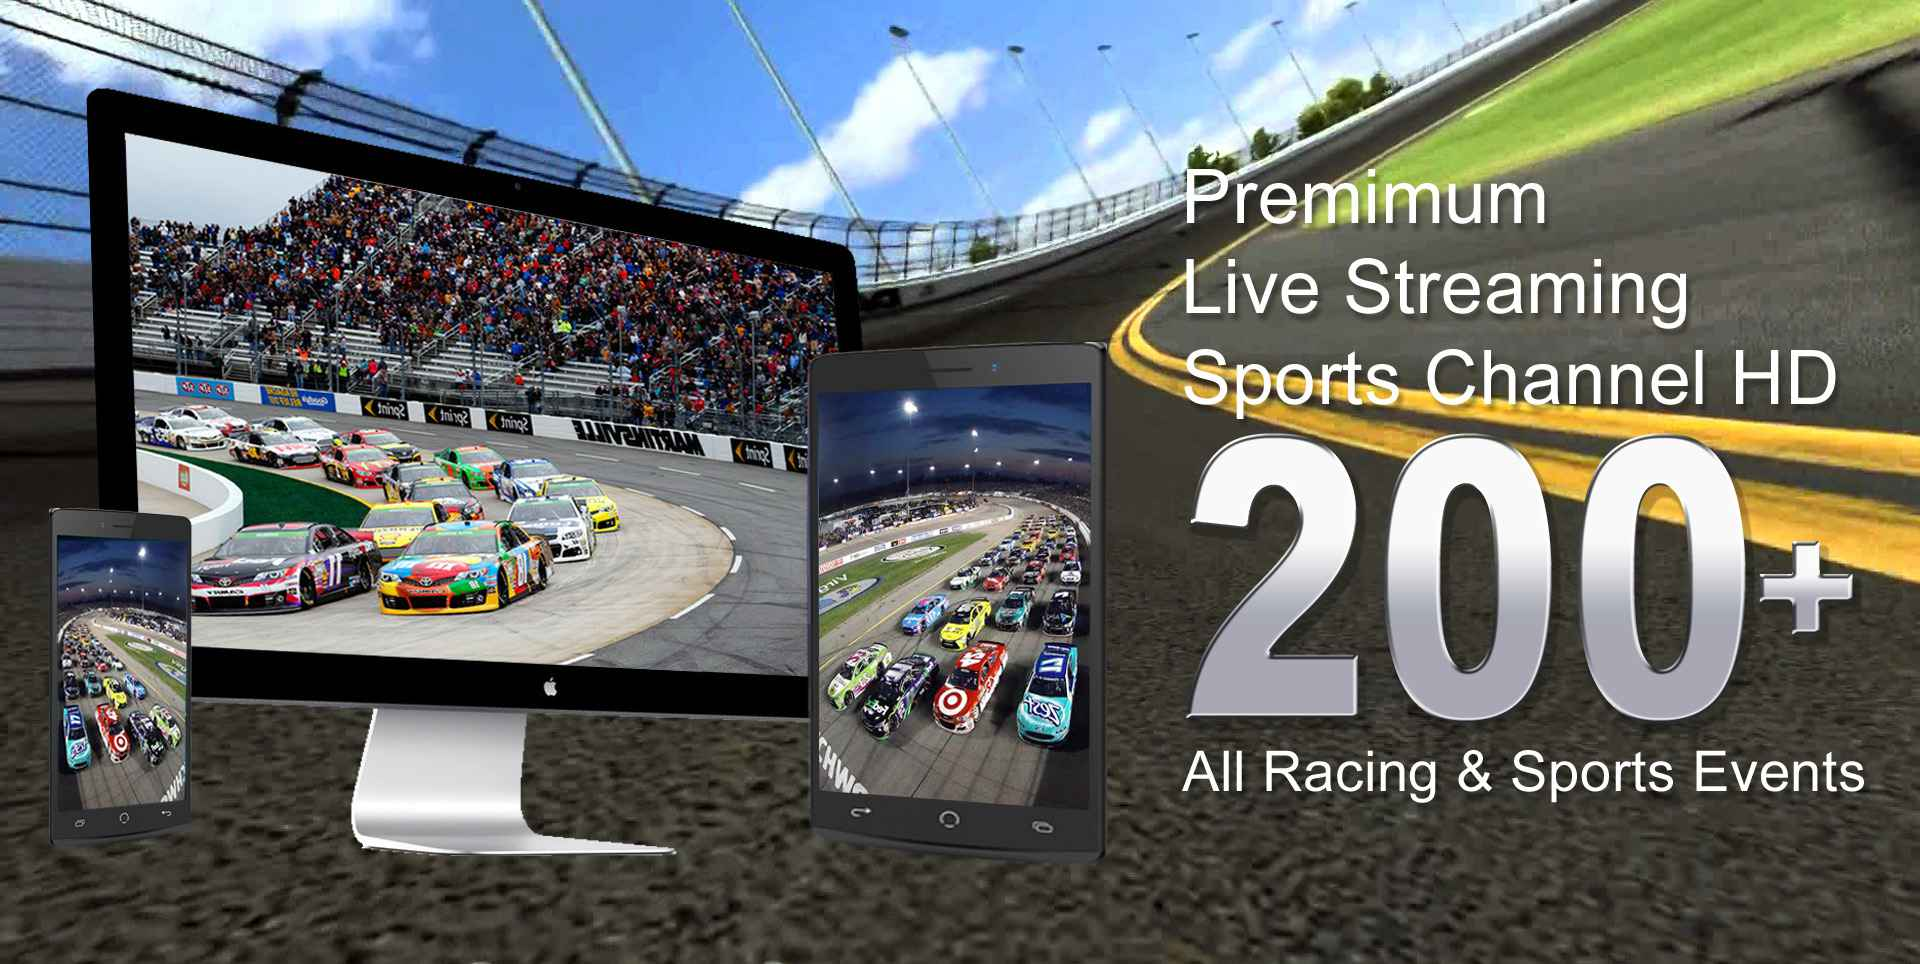 Nascar XFINITY Series at Richmond